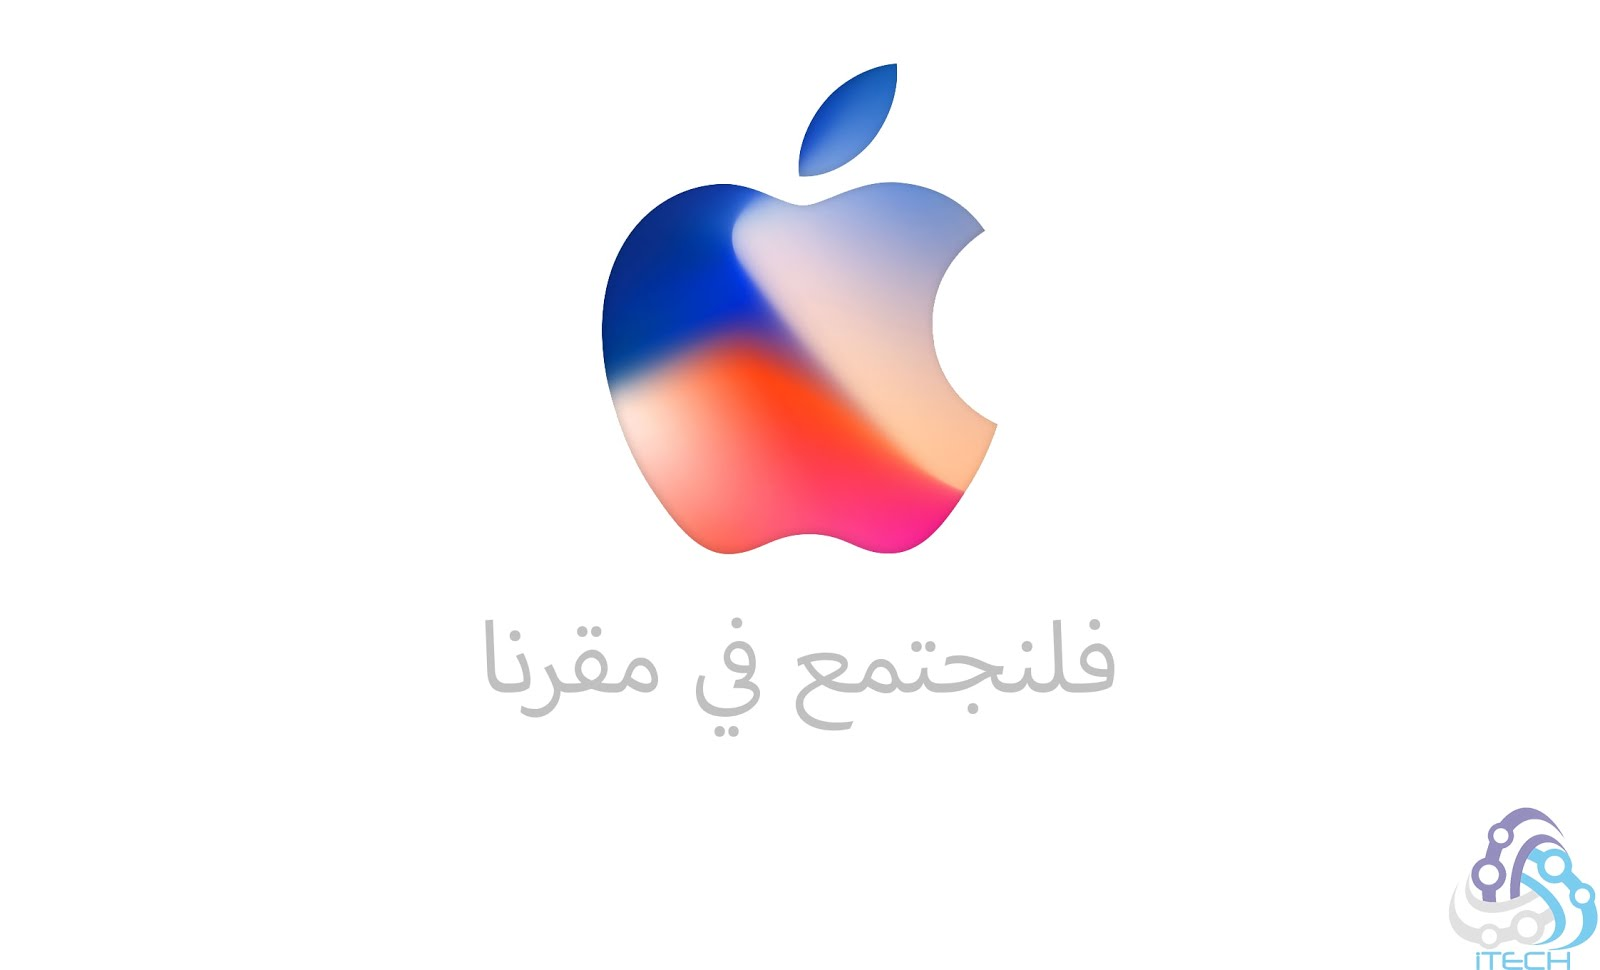 apple special event iPhone 8 iPhone X announcement